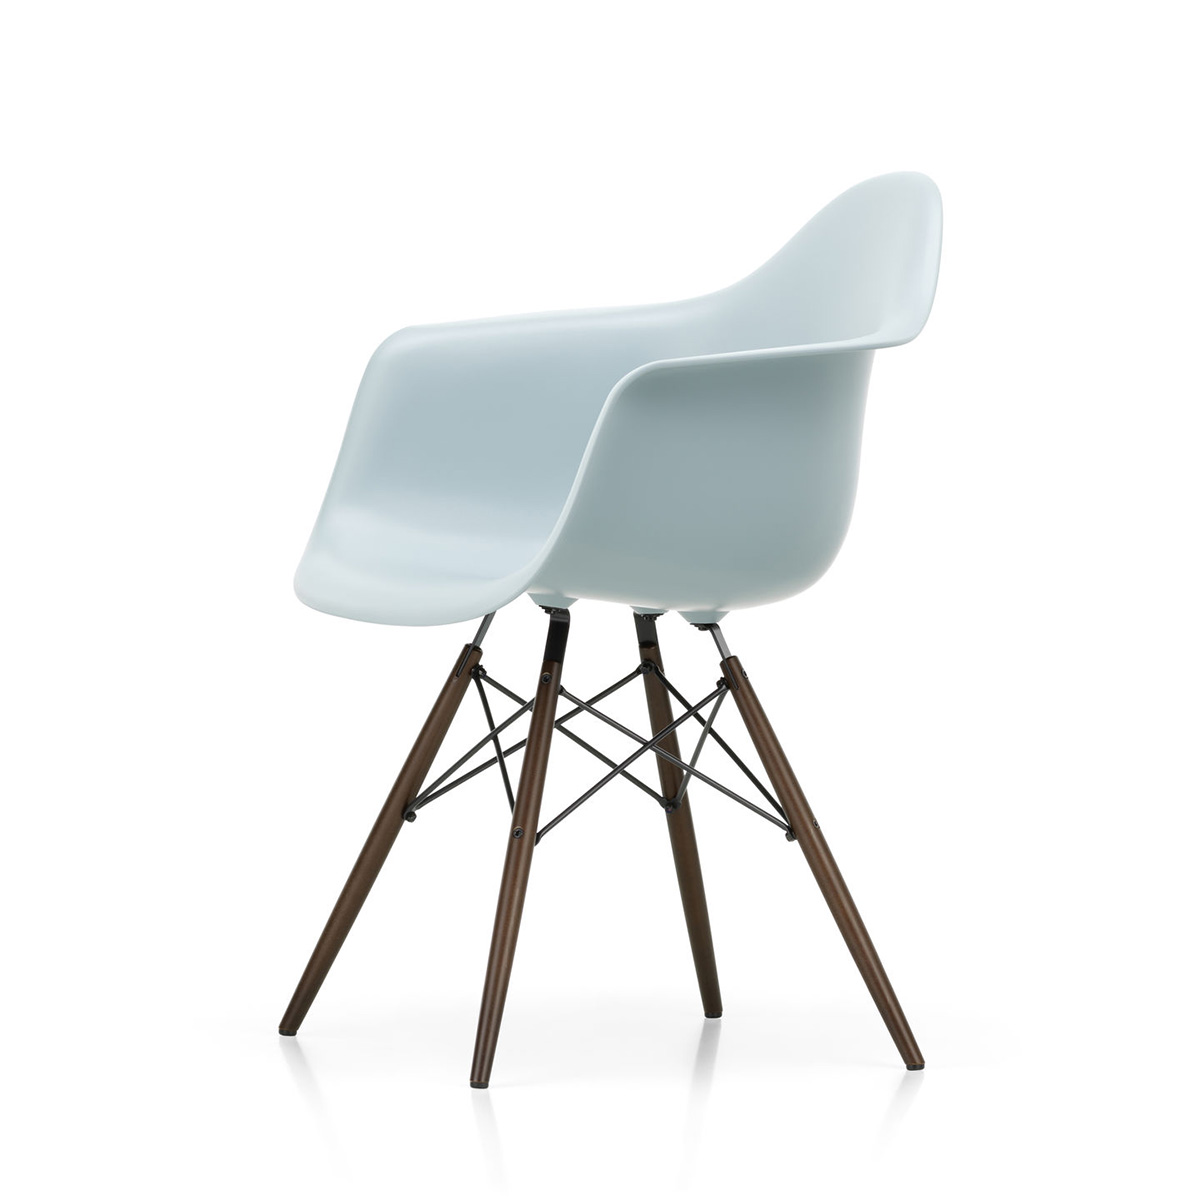 gallery-13581-for-VITRA0125